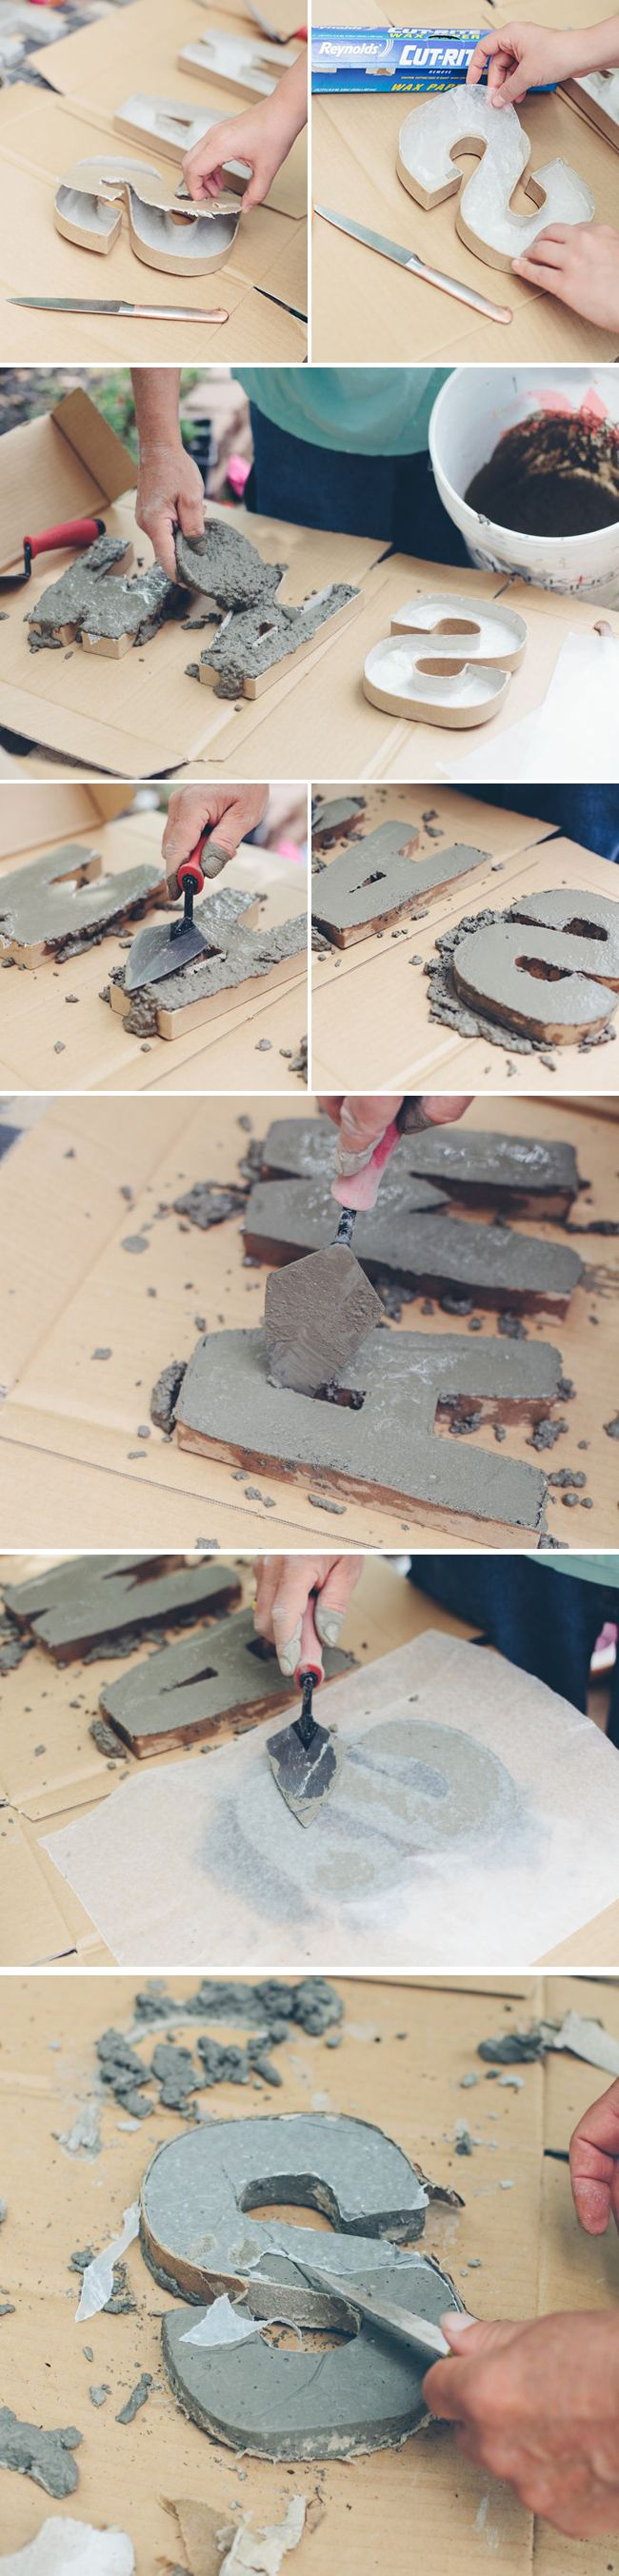 How to Make Cement Letters DIY